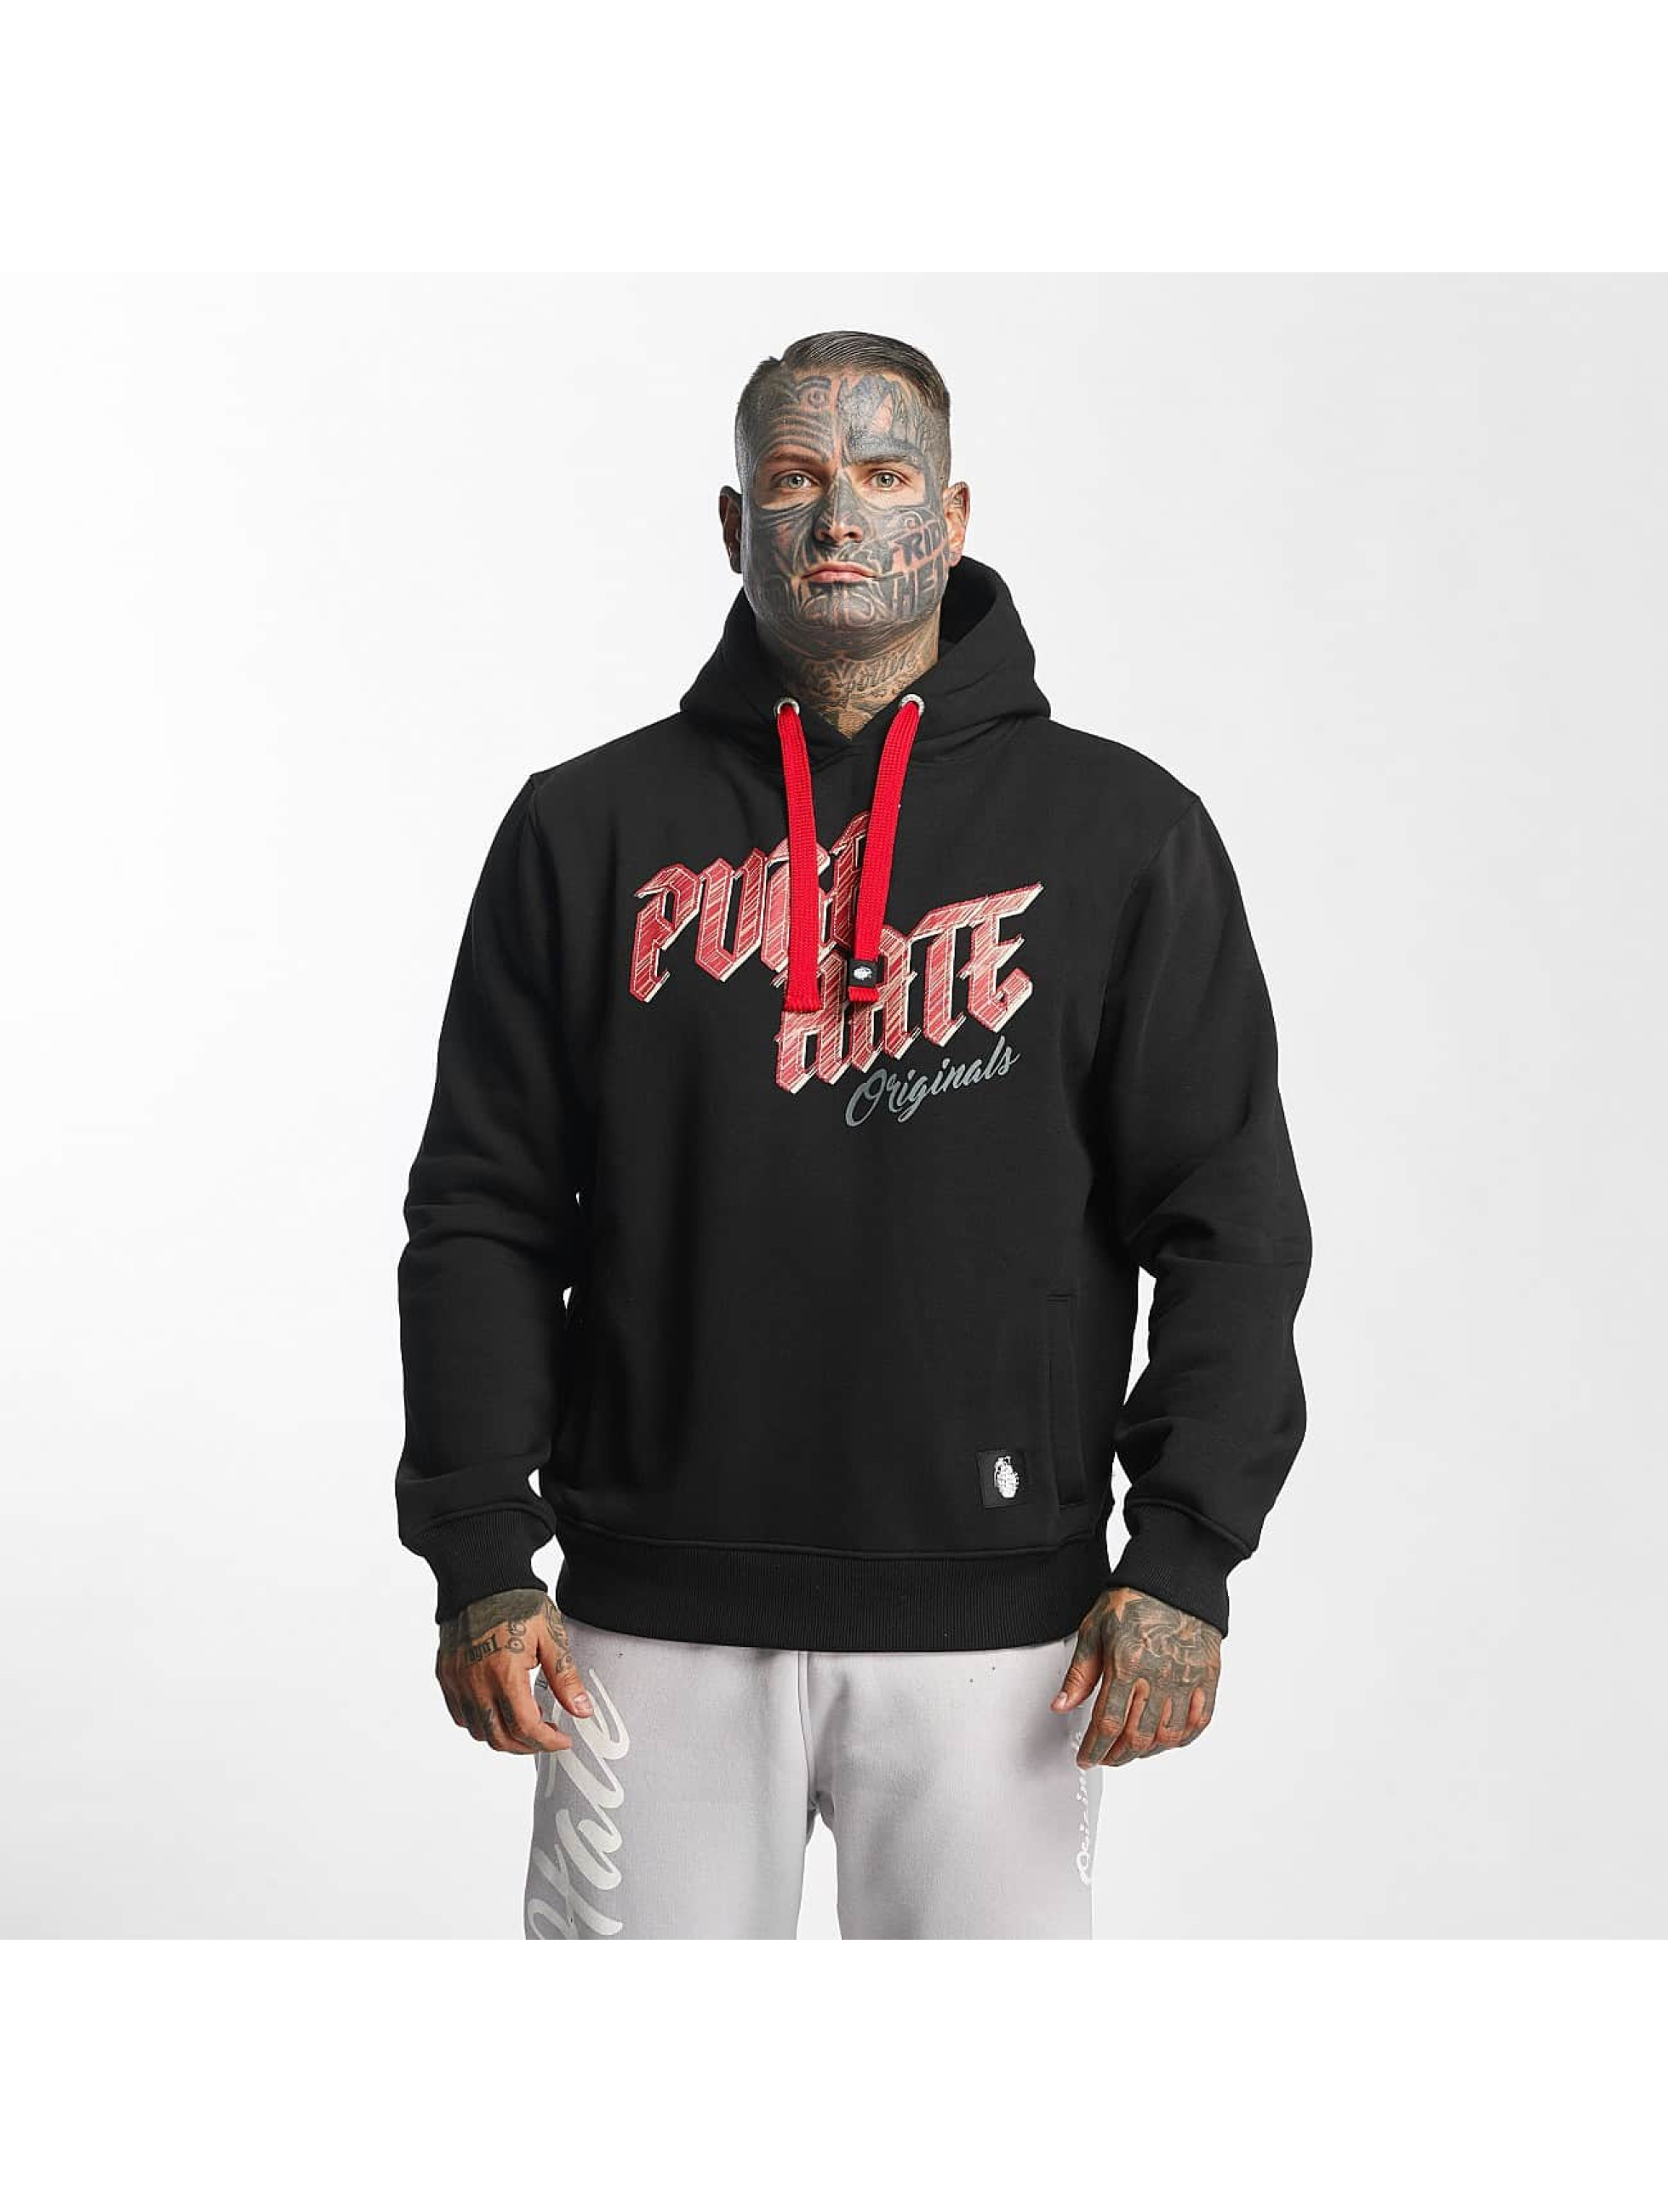 Pure Hate Hoody Pure Hate schwarz